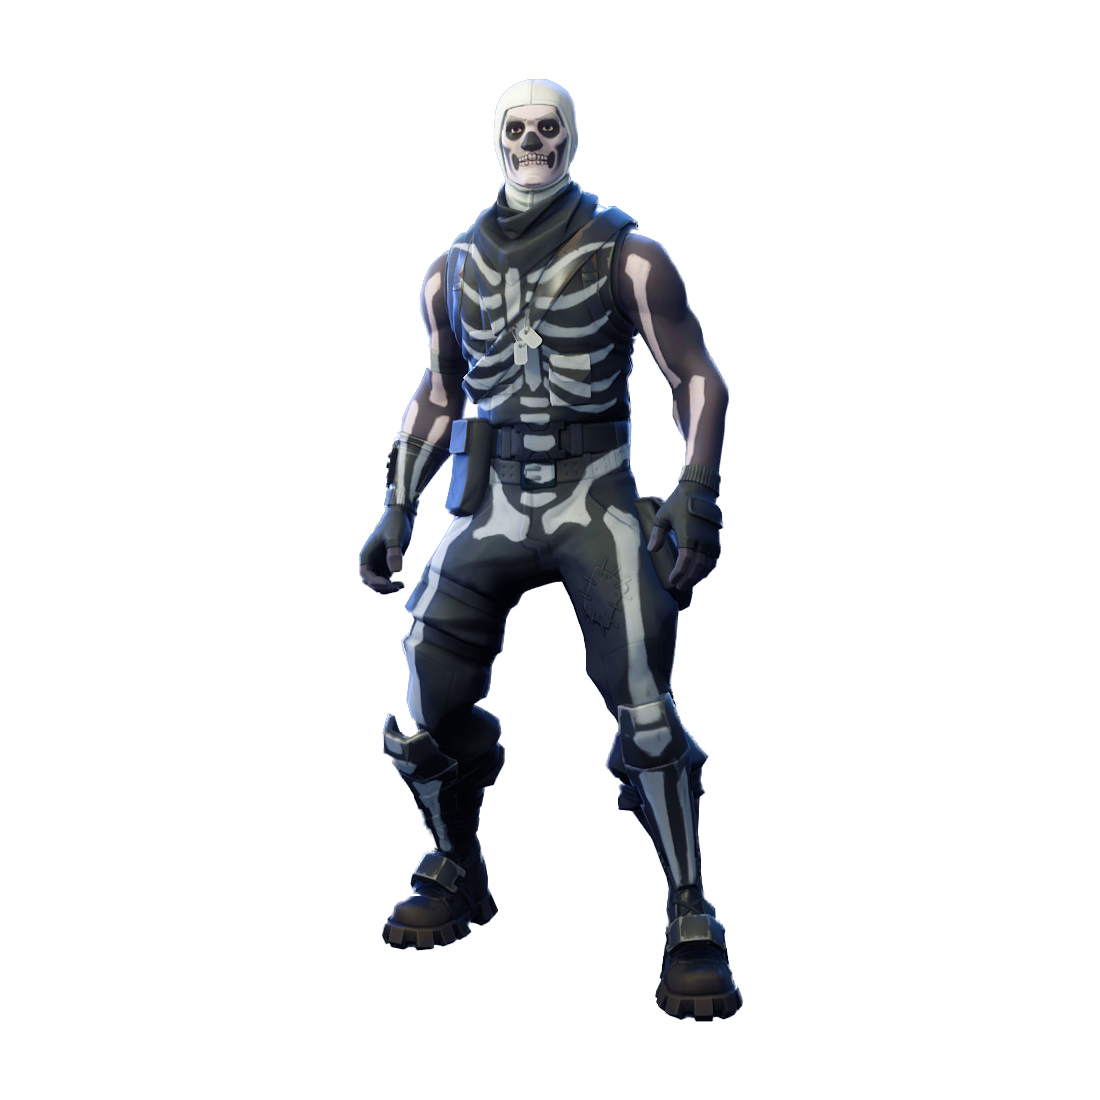 skull trooper png 1080p